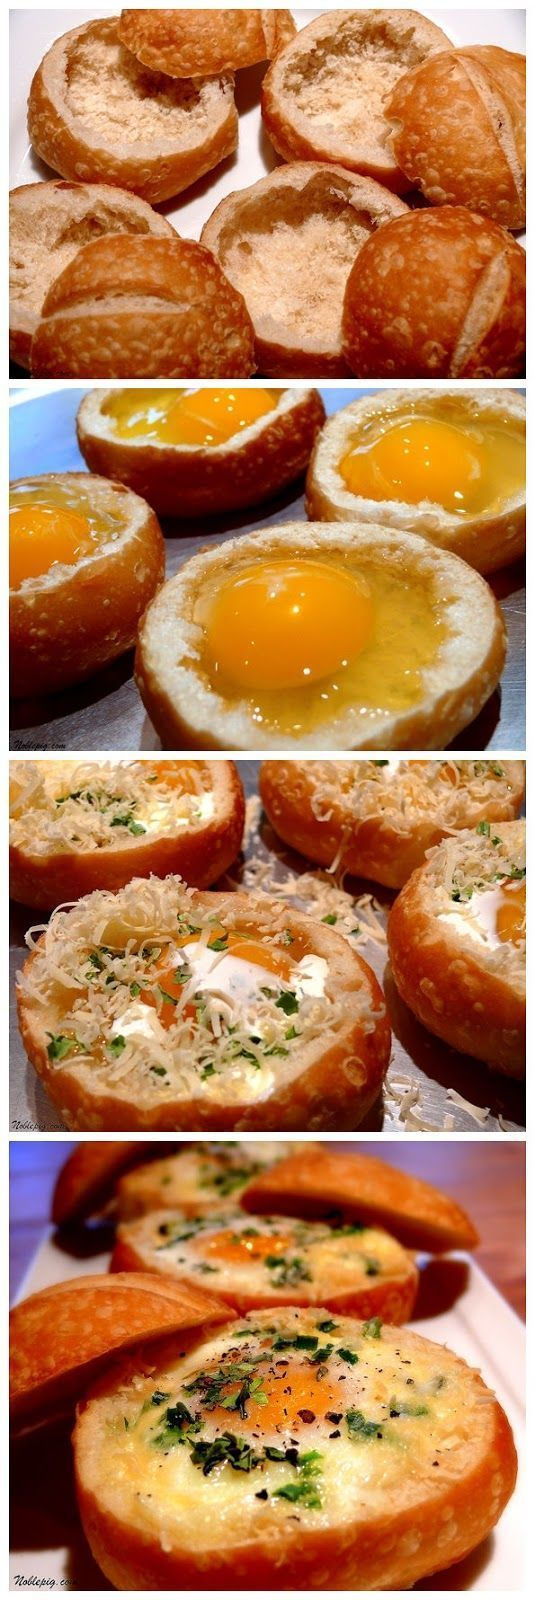 Baked Eggs in Bread Bowls, Great Sunday Morning Recipe! (Baking Eggs Dishes)